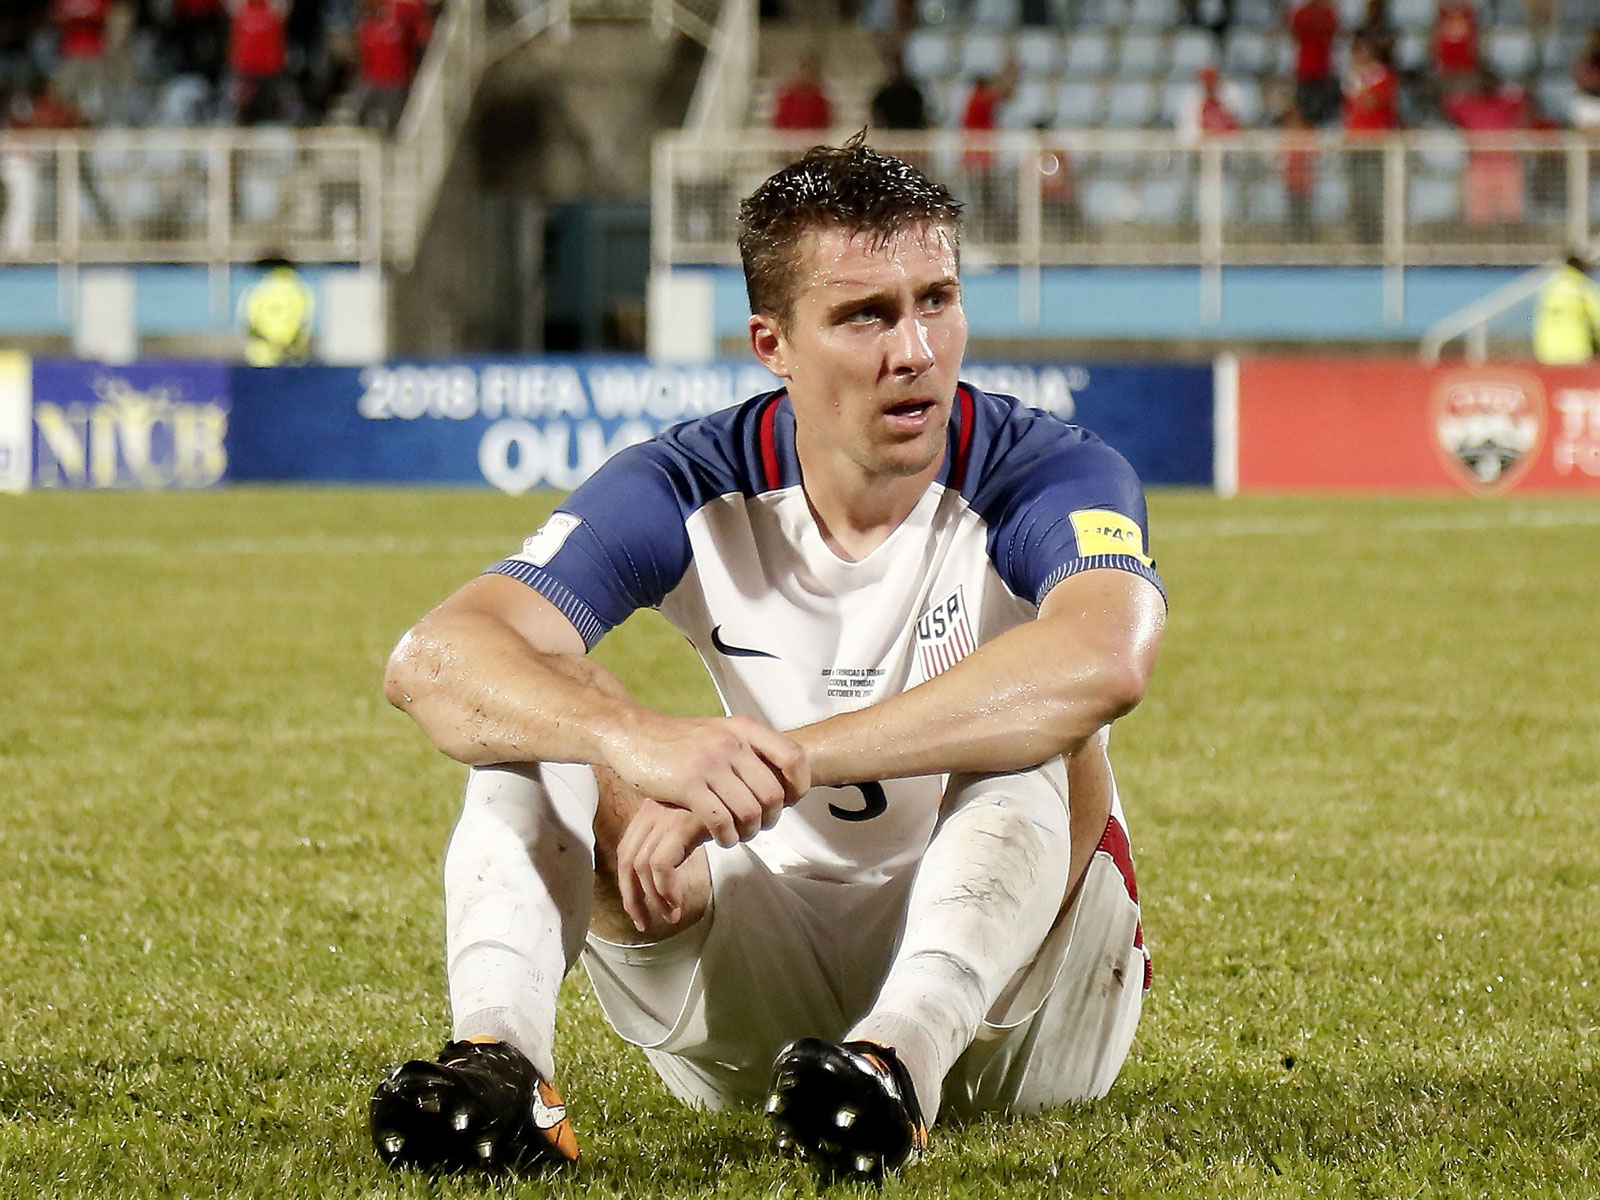 Matt Besler and the USA are out of the World Cup